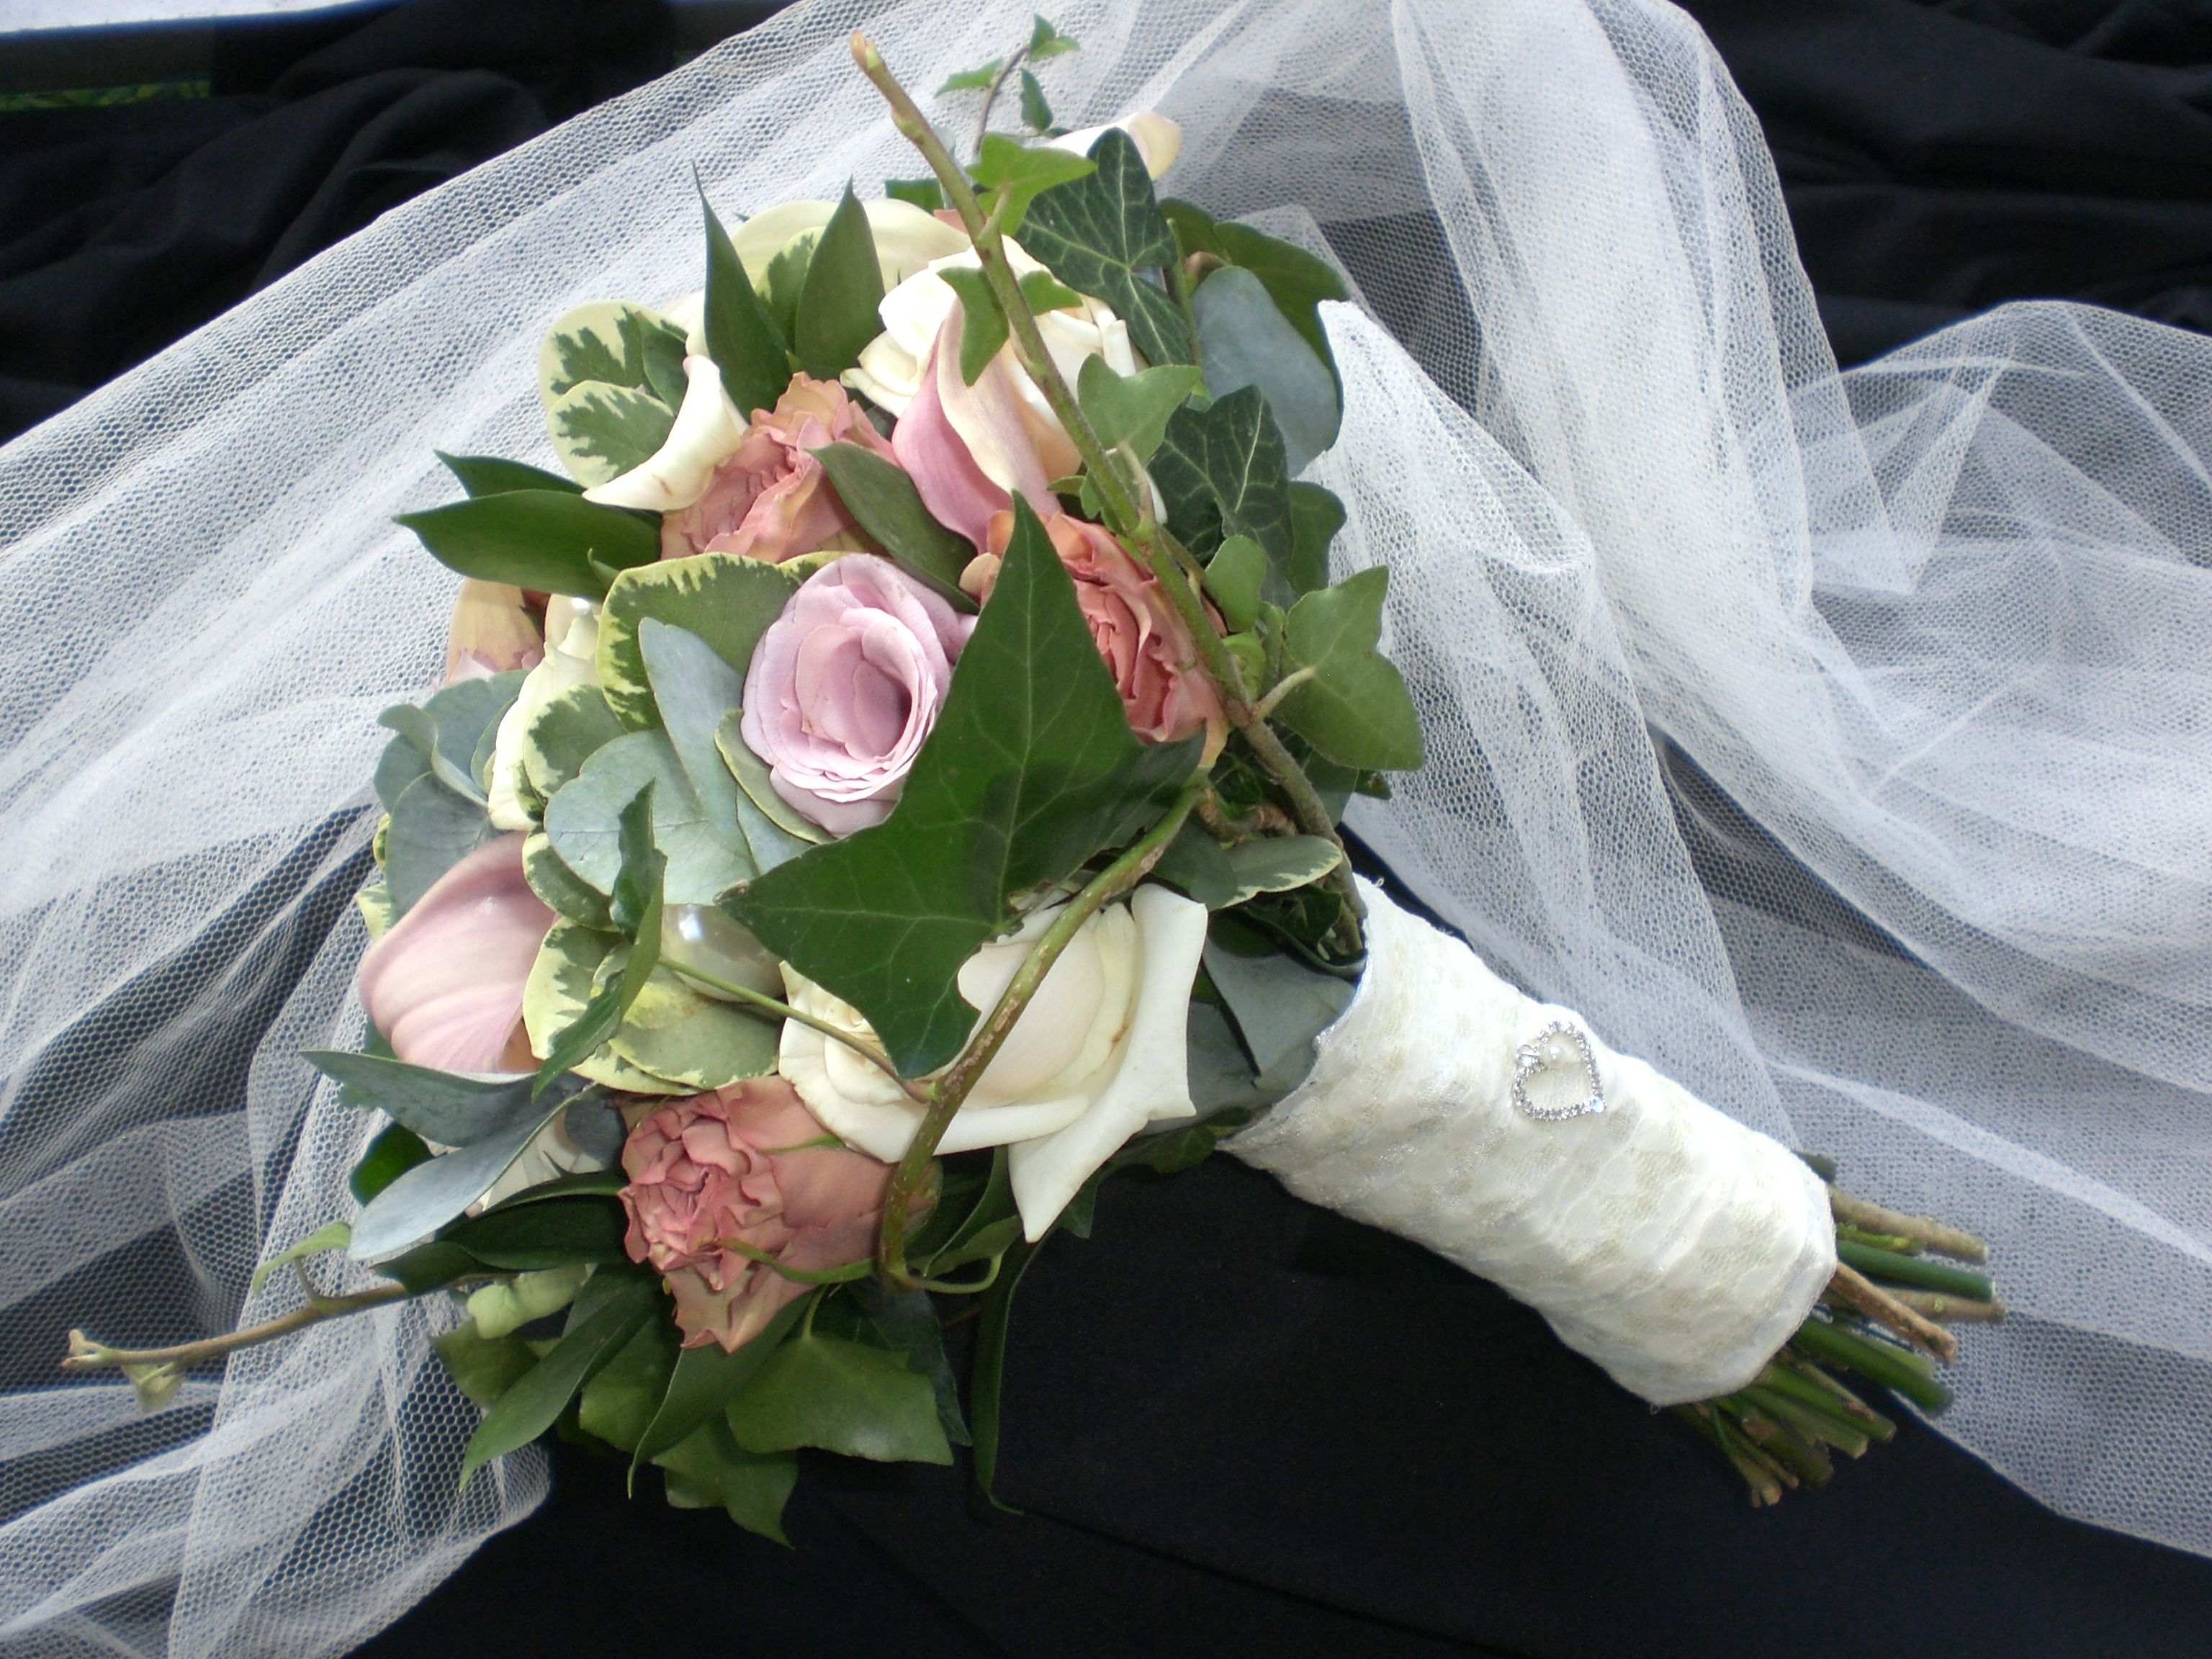 One of our own designs.. vintage inspired with lace, pearl and brooch detailing. See more at www.flowerbox-leicester.co.uk